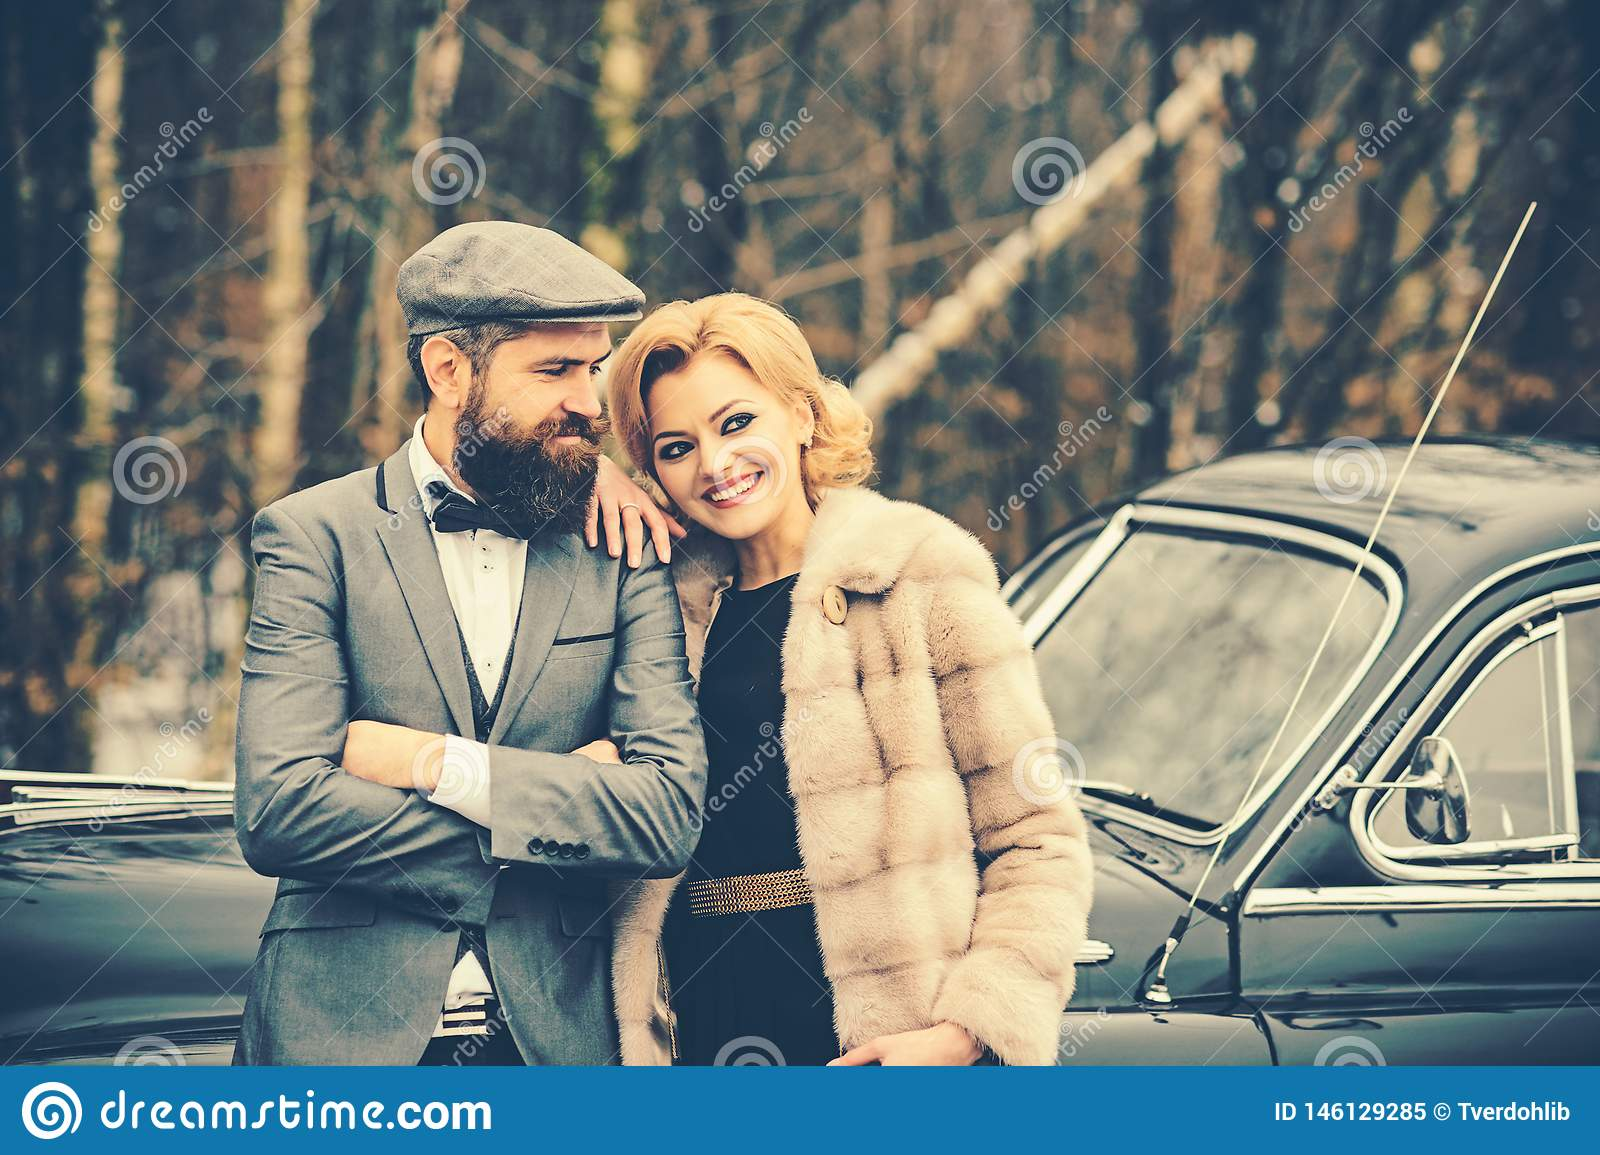 Couple in love on romantic date. Escort of girl by security. Retro collection car and auto repair by mechanic driver